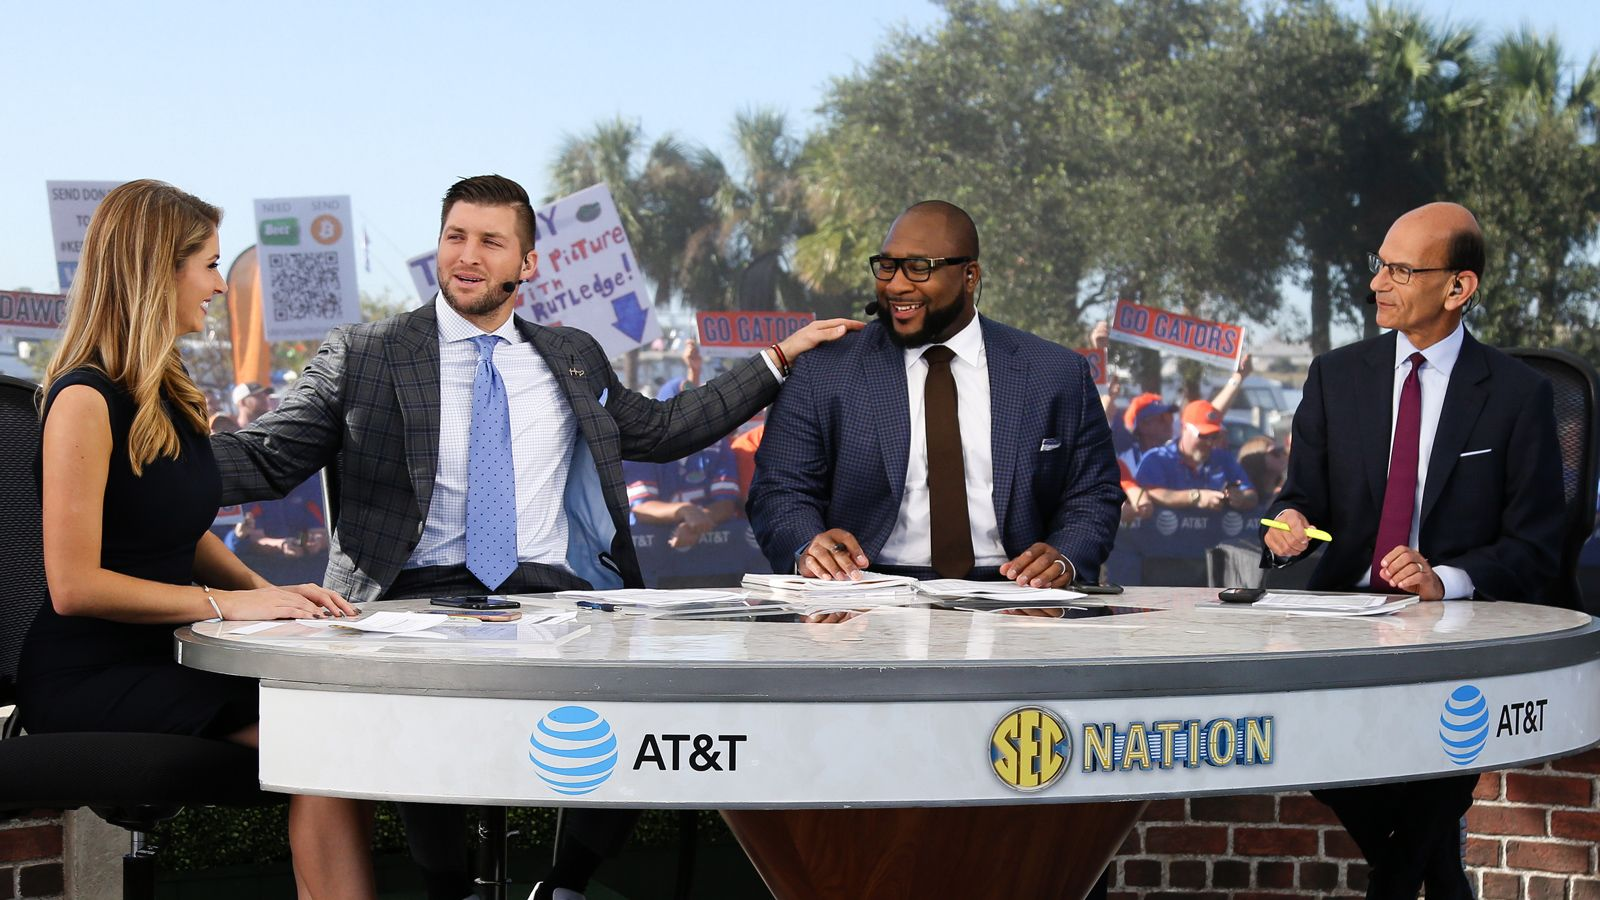 SEC Nation kicks off 2018 campaign with two stops